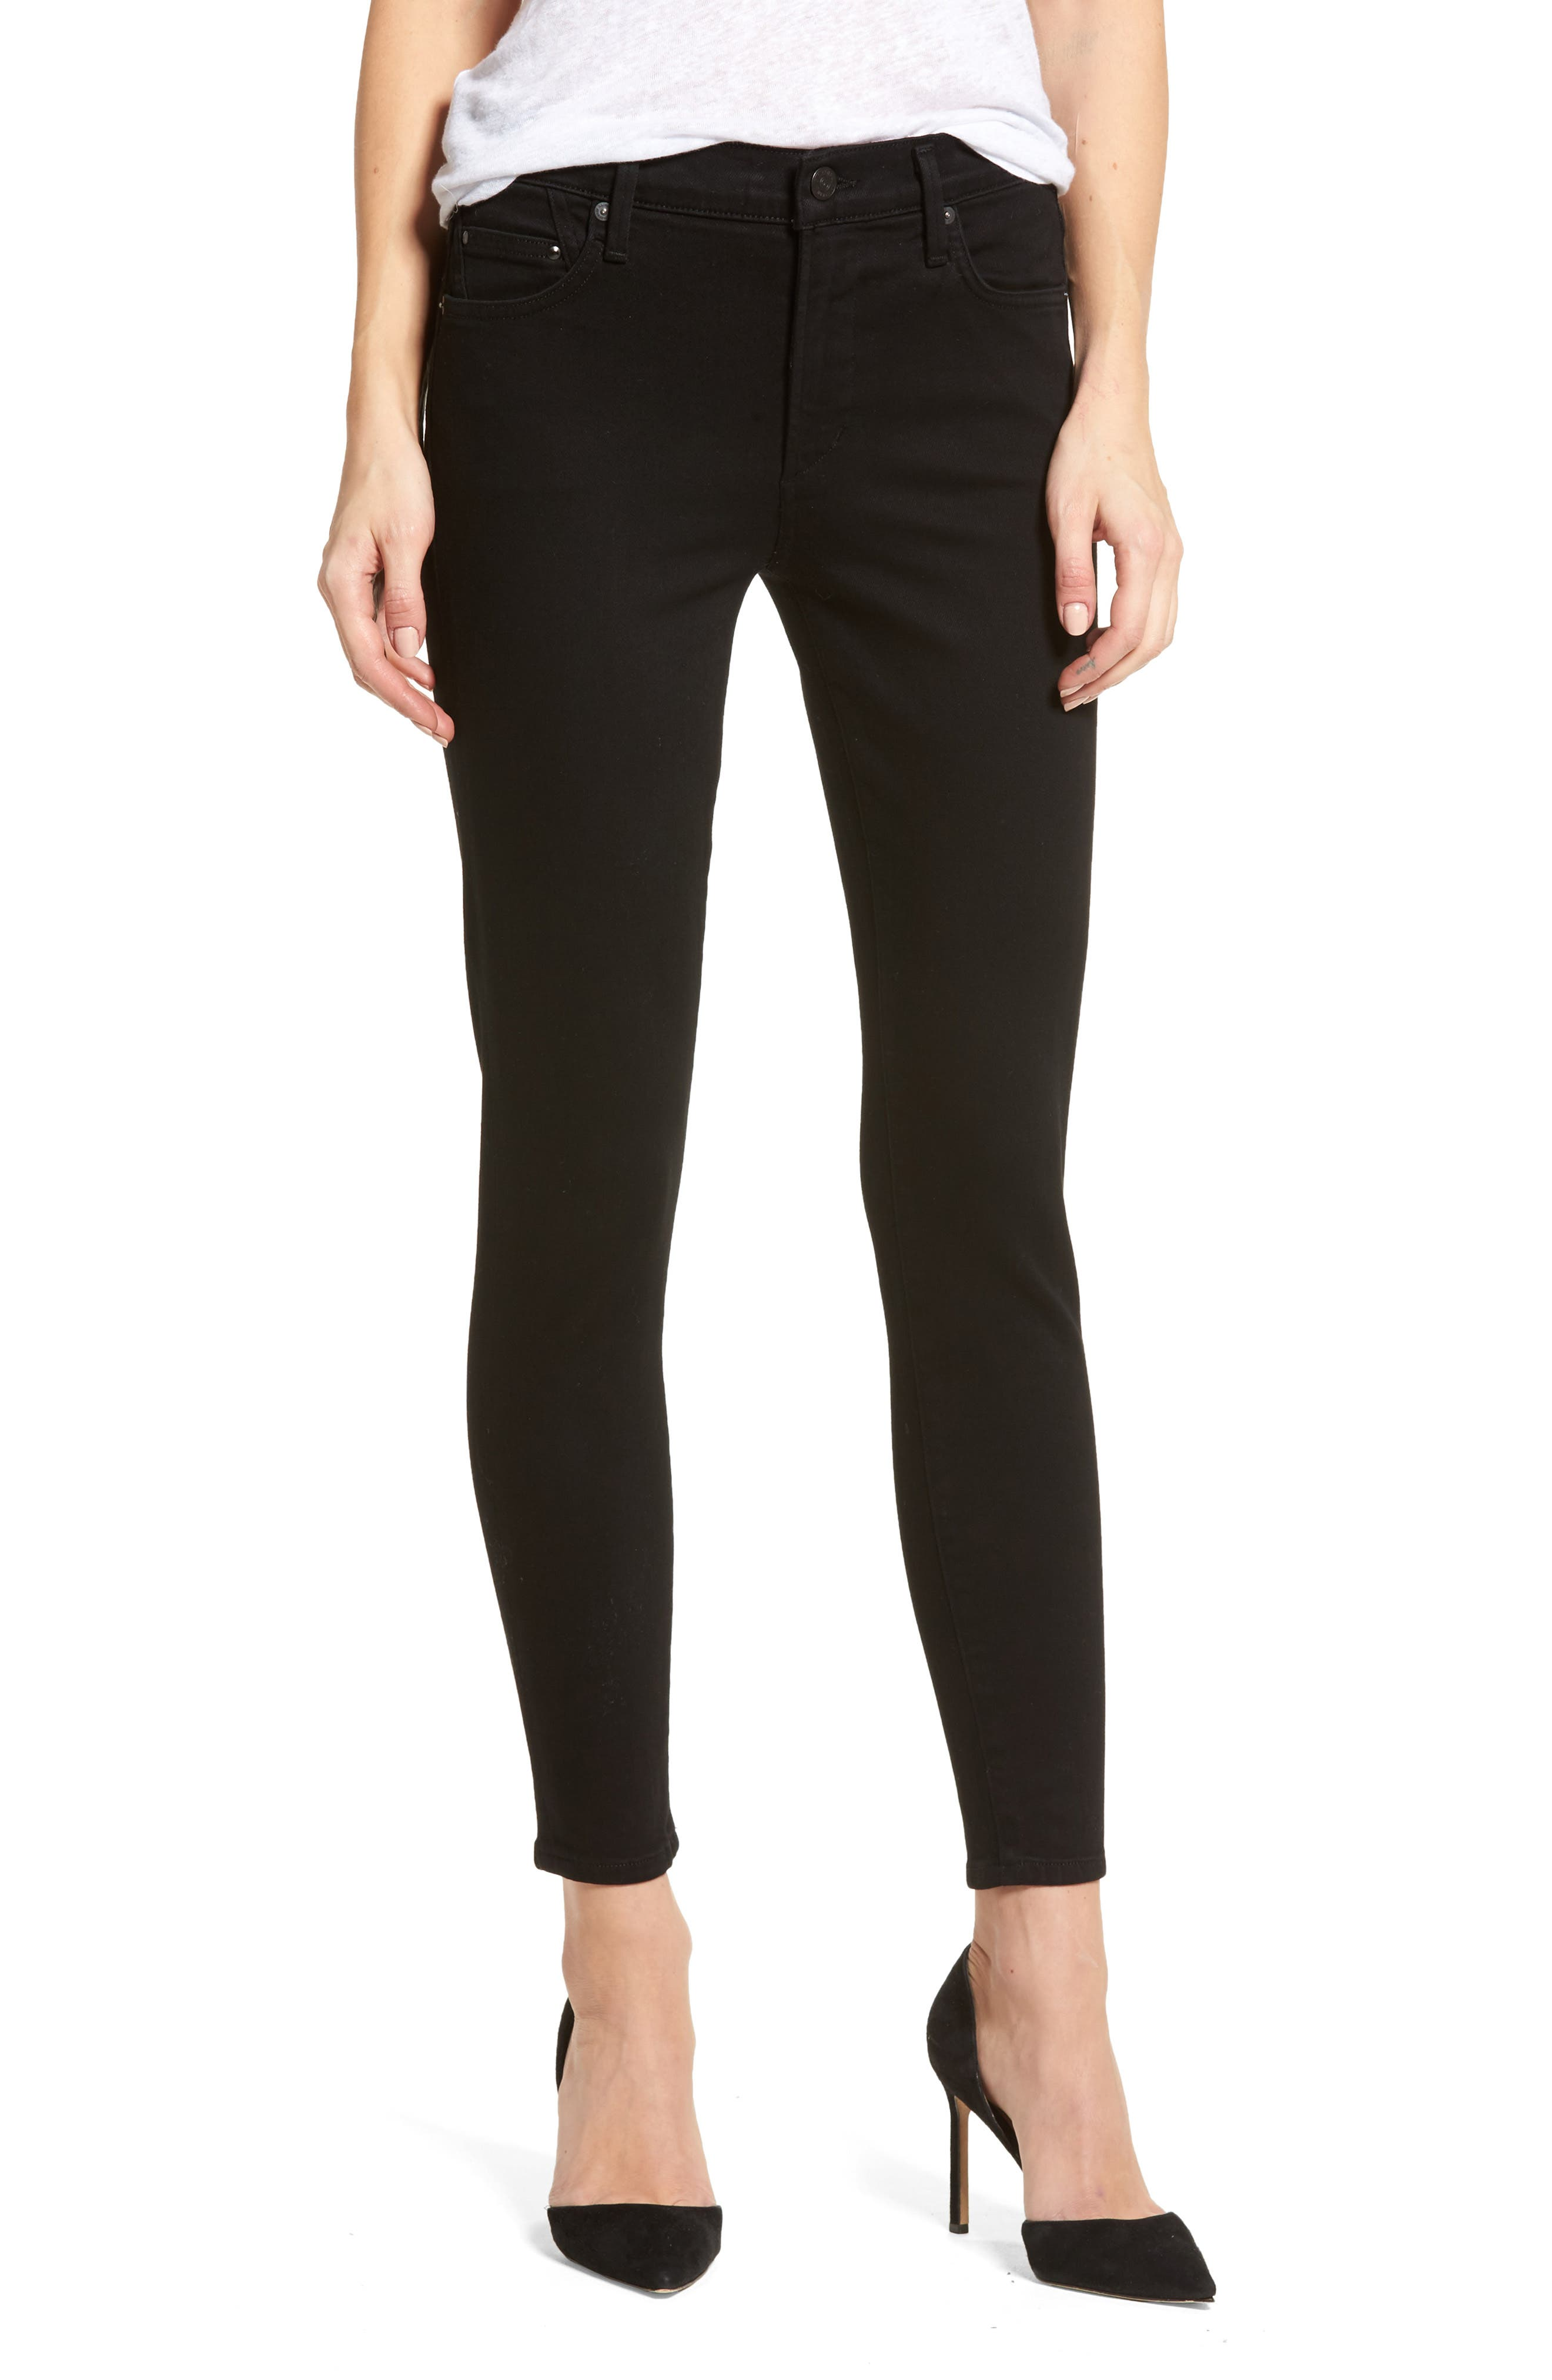 Alternate Image 1 Selected - Citizens of Humanity Rocket Skinny Jeans (Blackbird) (Petite)